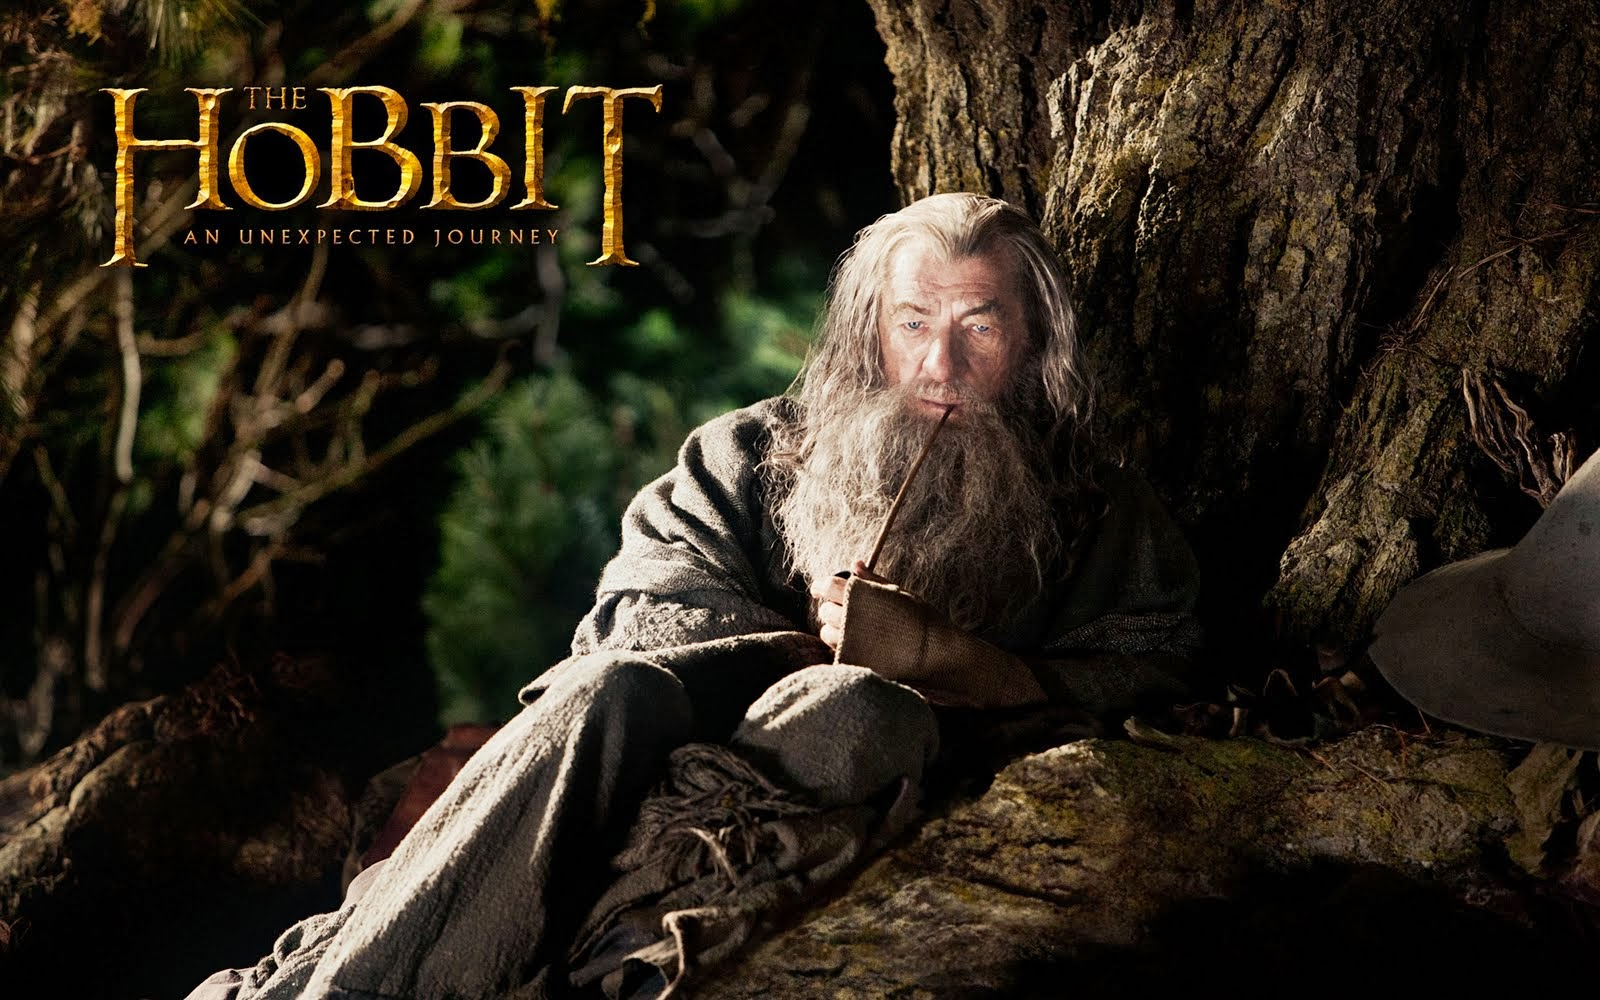 the hobbit movie wallpapers - photo #21